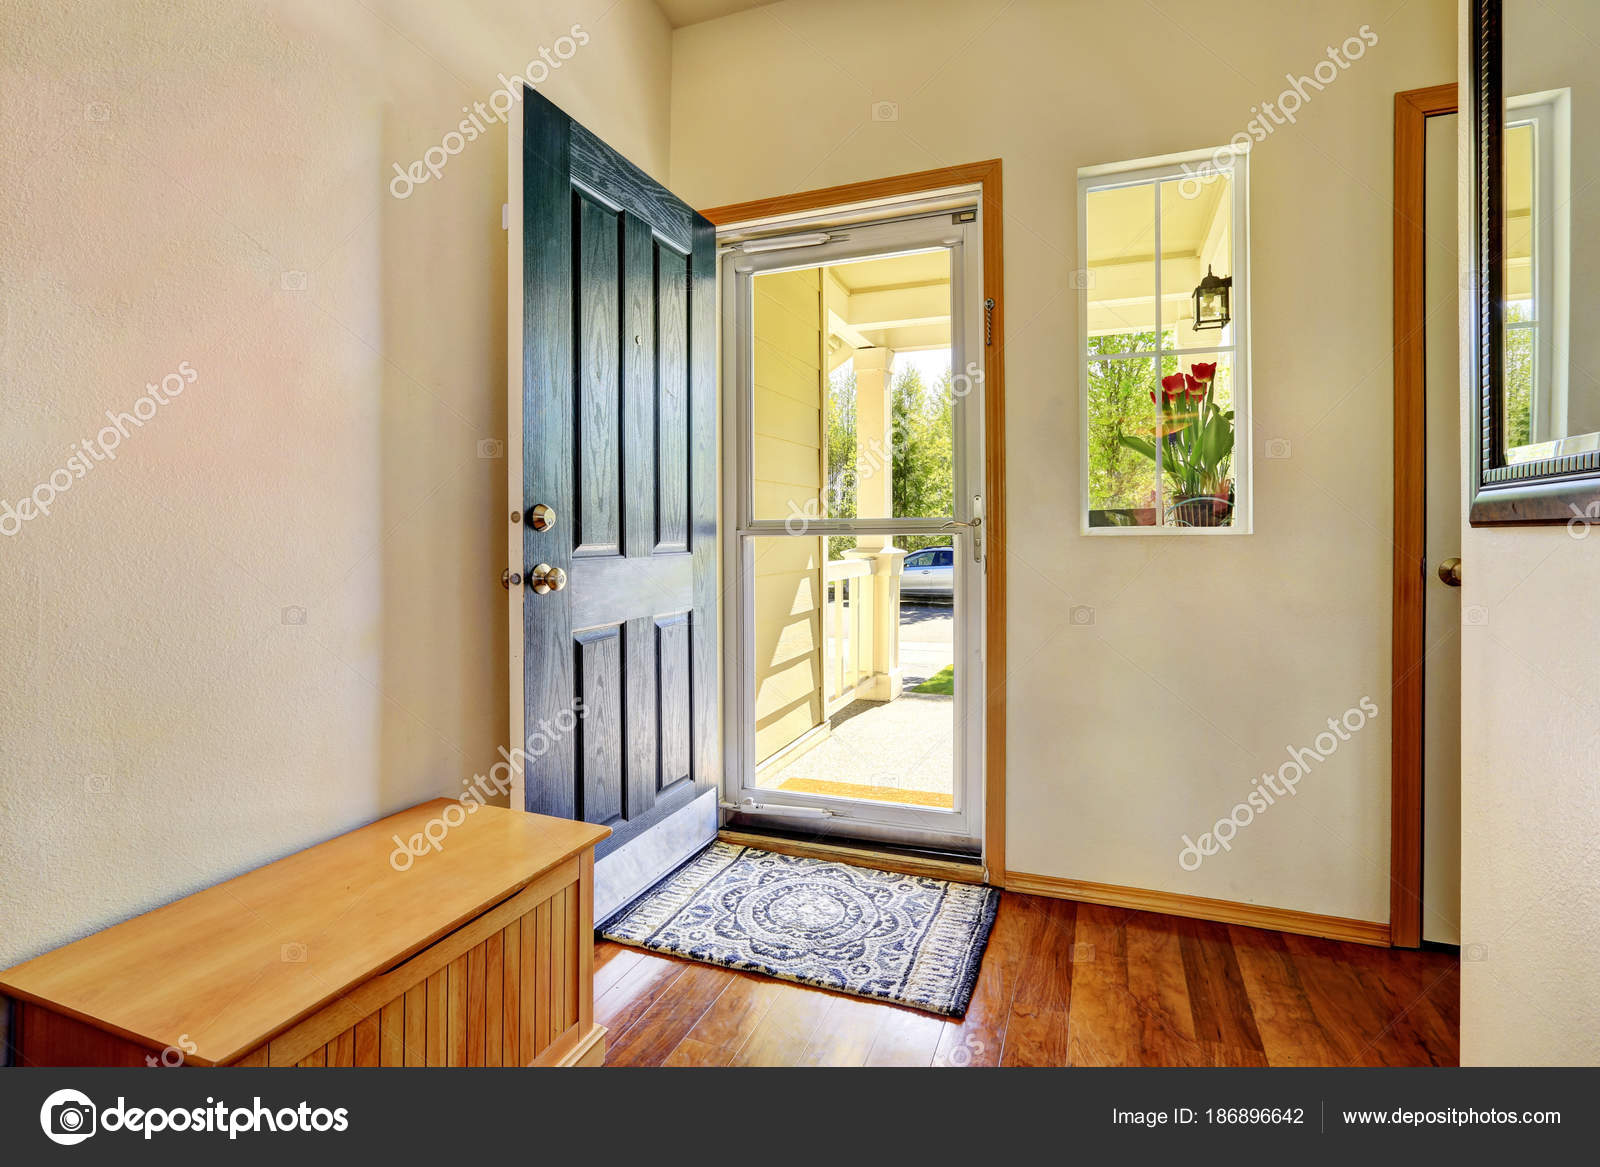 Open front door Glass Small Foyer With Green Open Front Door Stock Photo Istock Small Foyer With Green Open Front Door Stock Photo Iriana88w